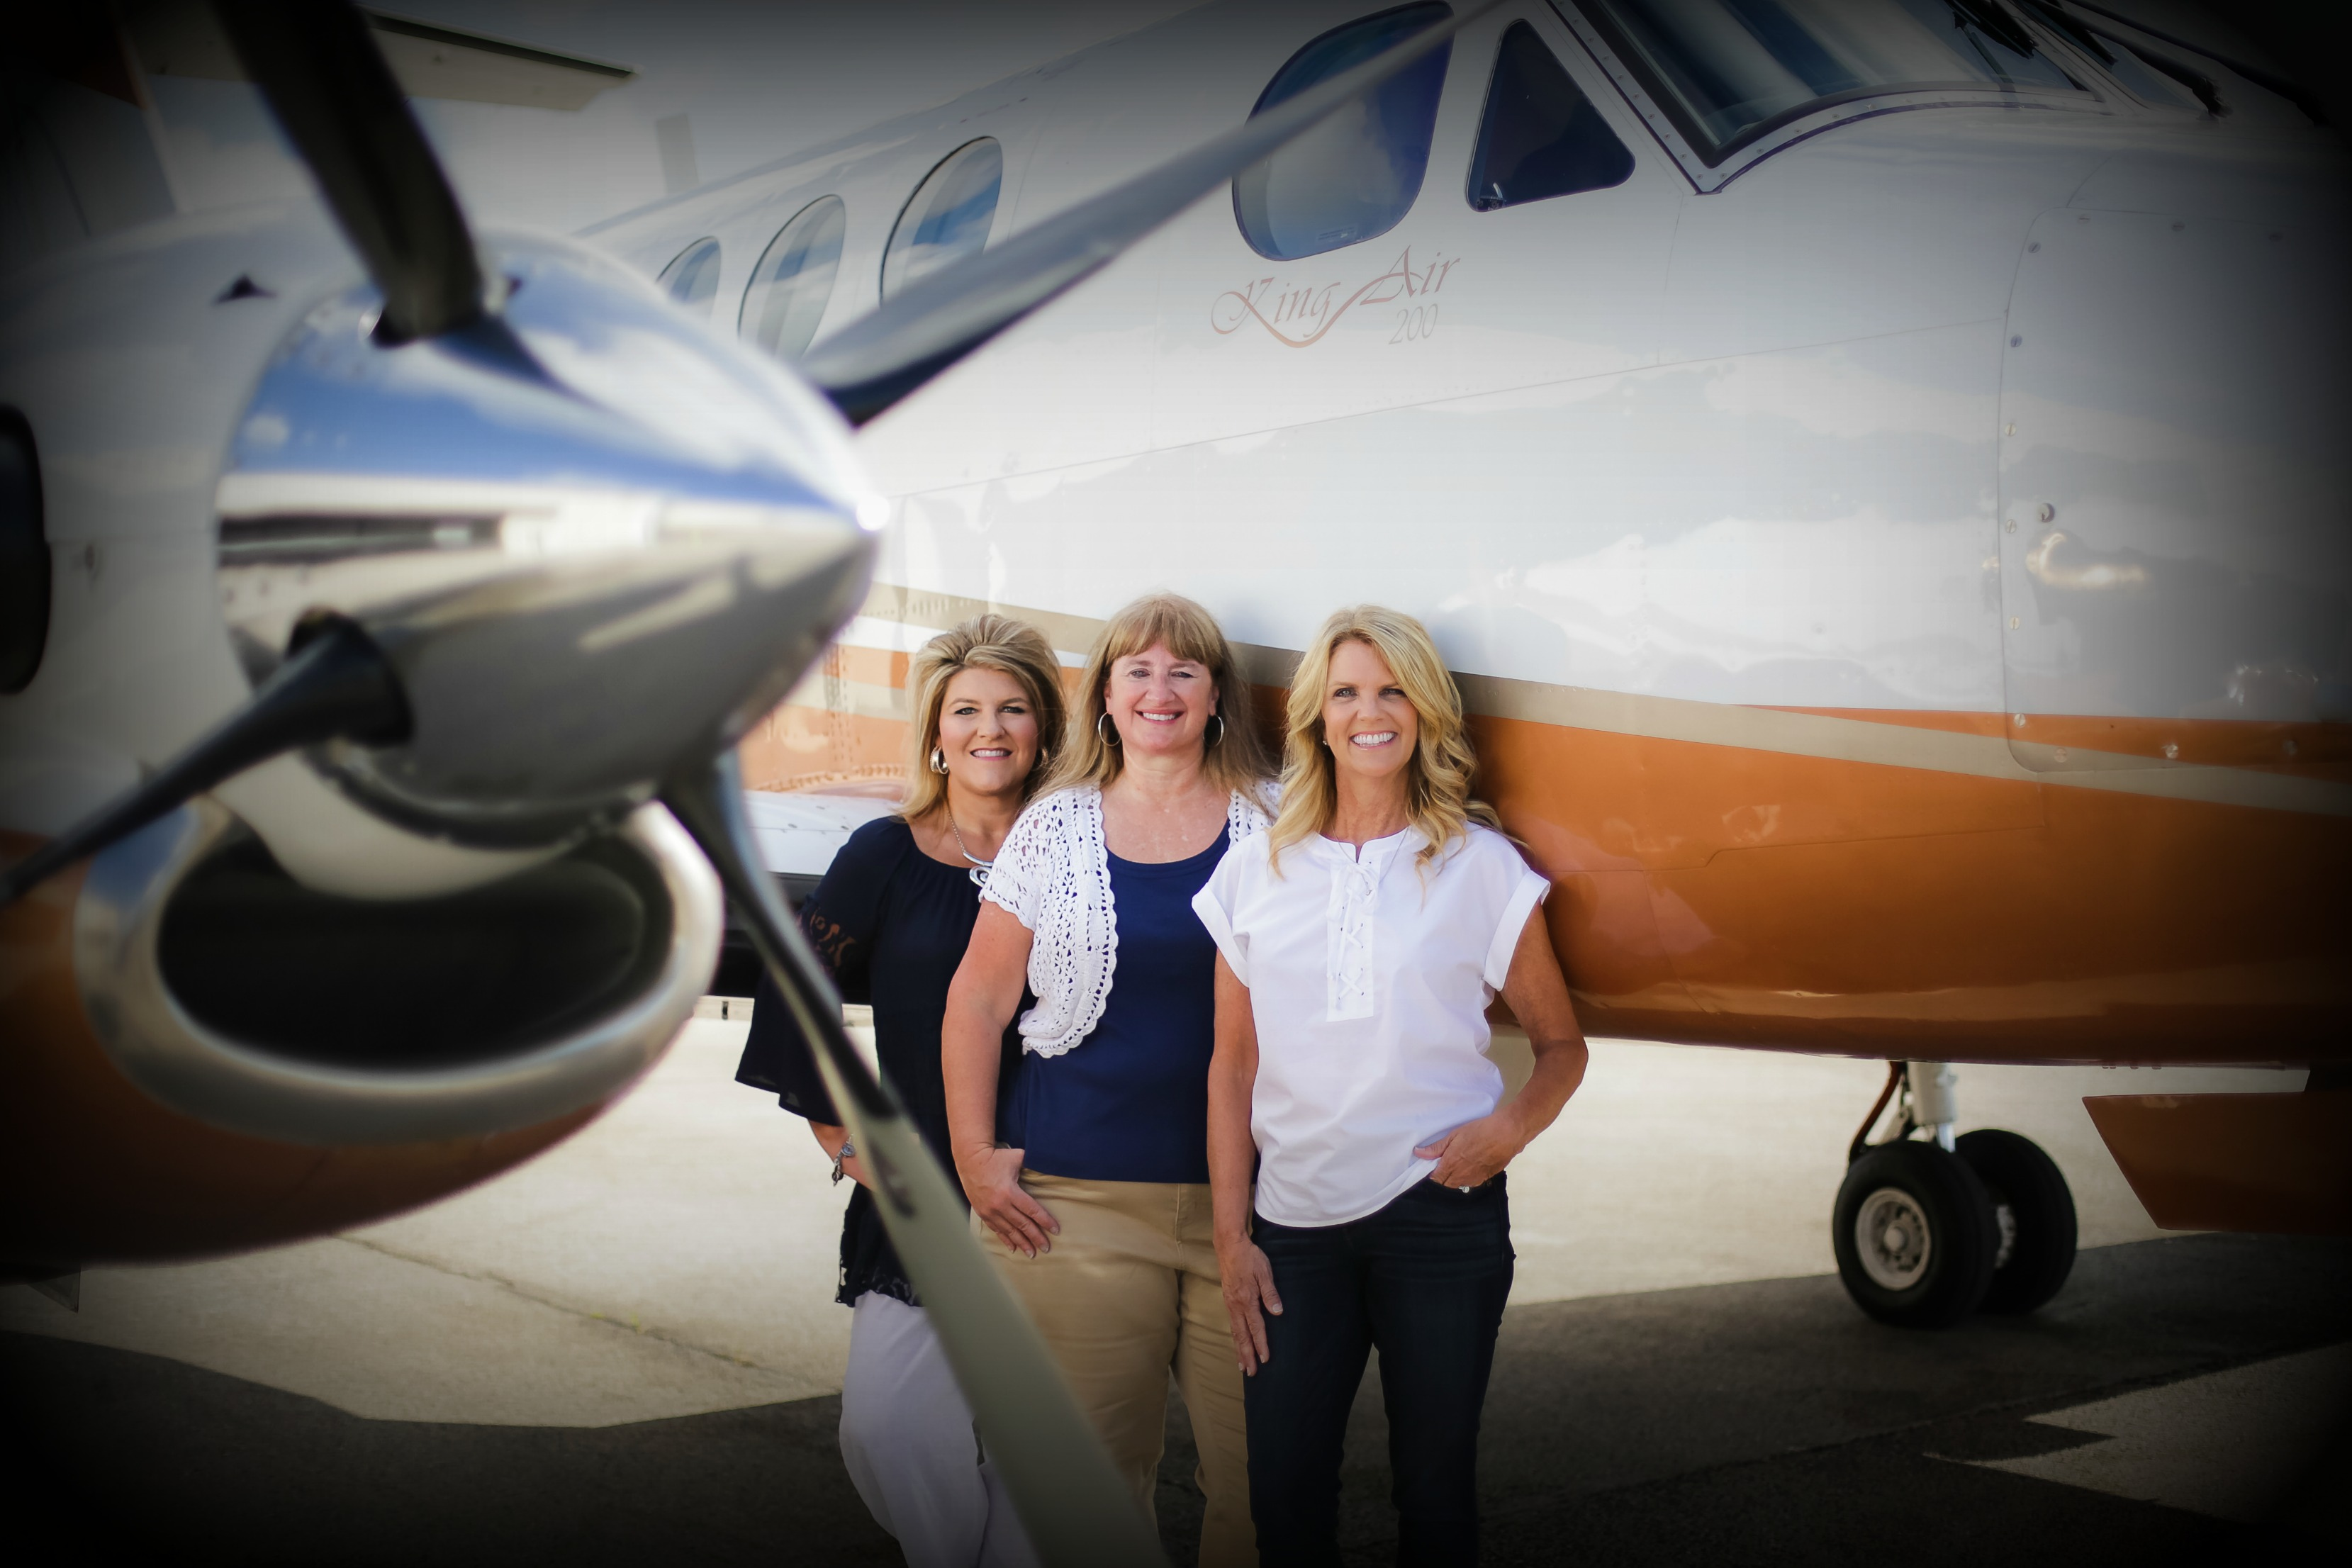 Some of our agents waiting to help you with an awesome vacation!